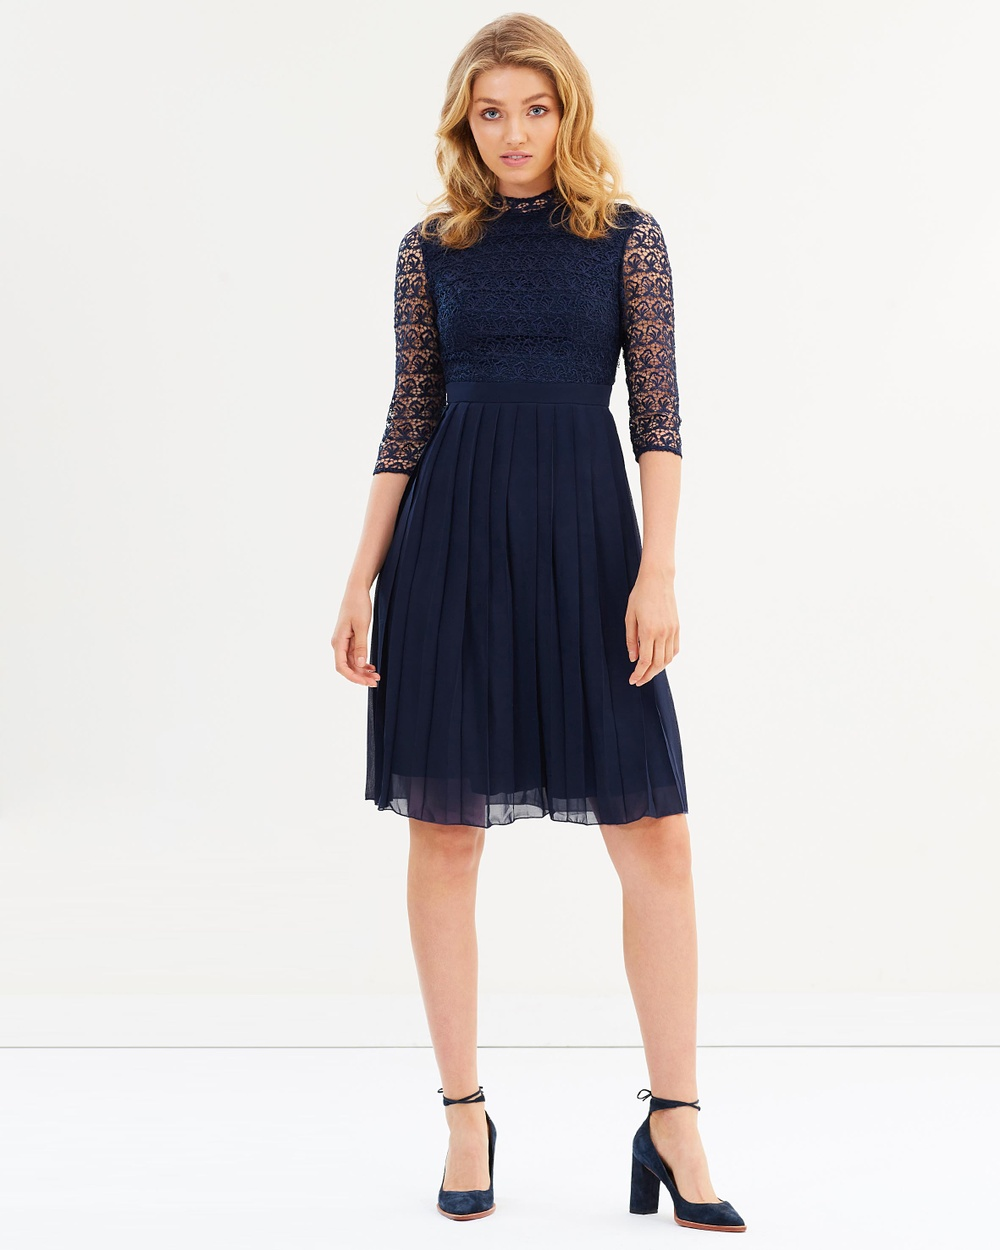 Chi Chi London Patrycja Dress Dresses Navy Patrycja Dress